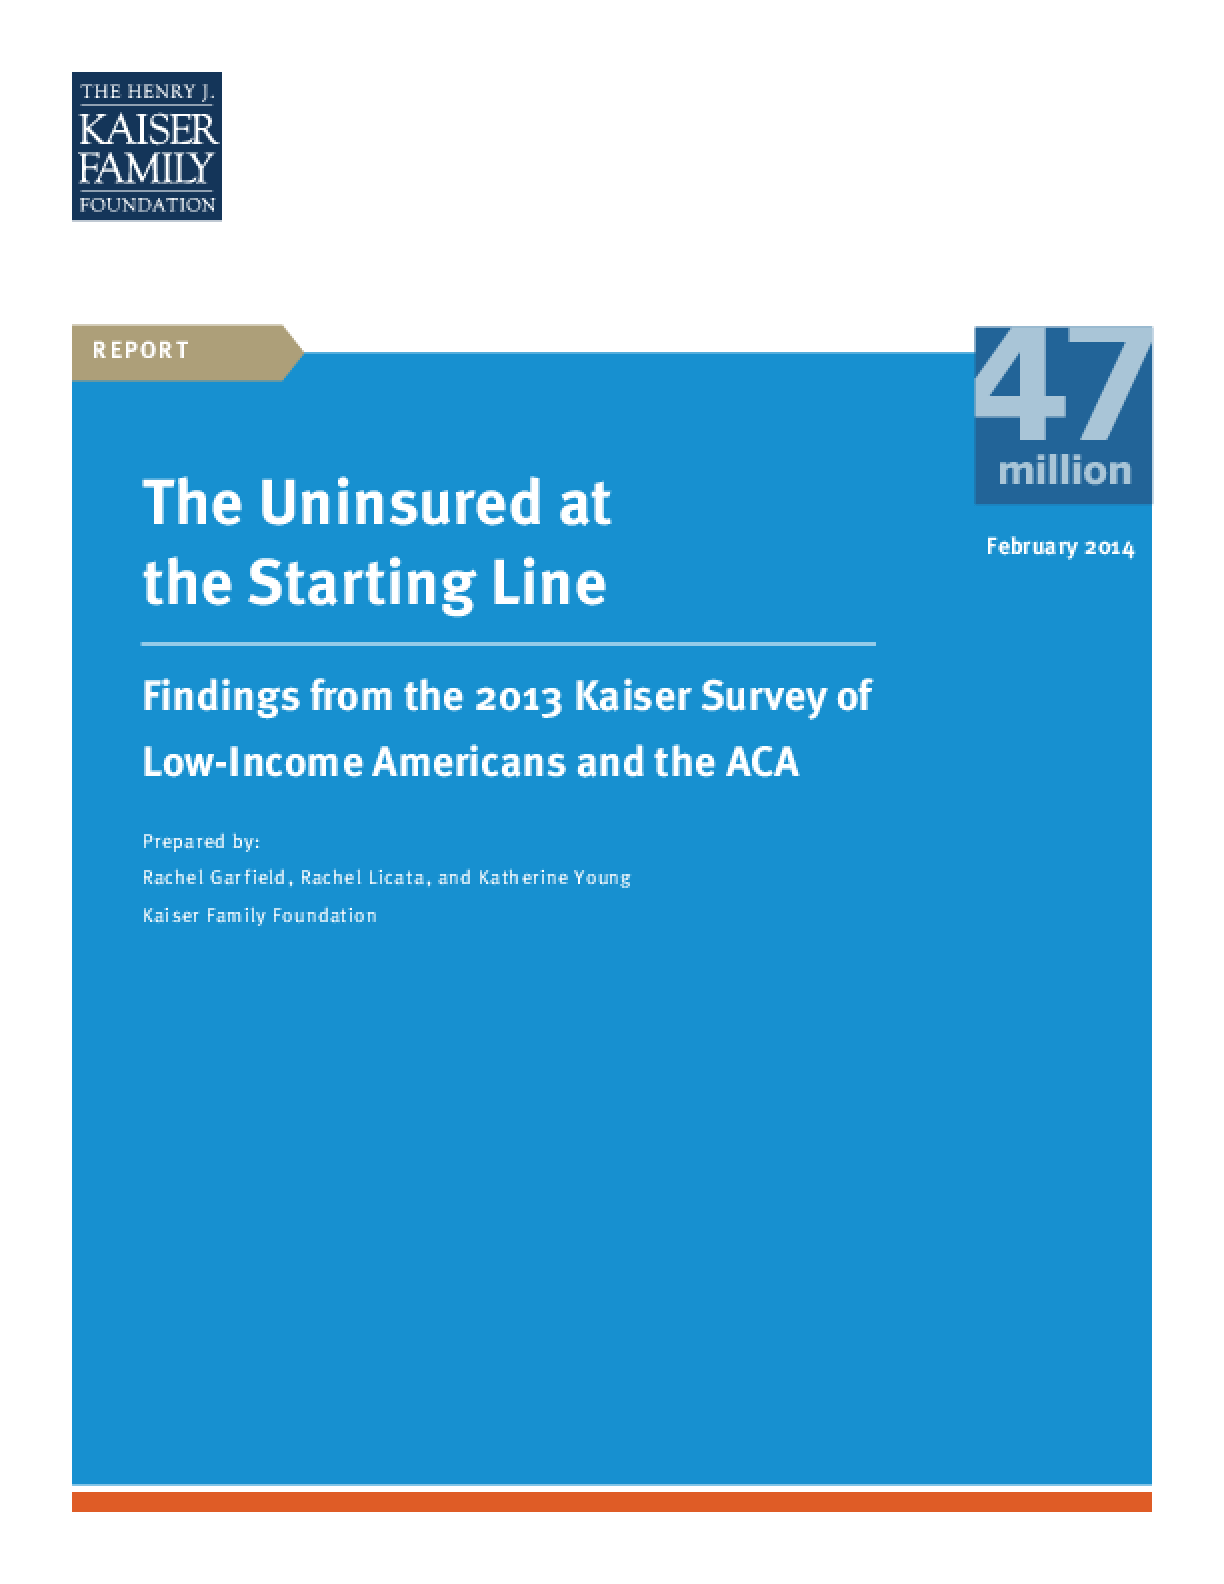 The Uninsured at the Starting Line: Findings from the 2013 Kaiser Survey of Low-Income Americans and the ACA